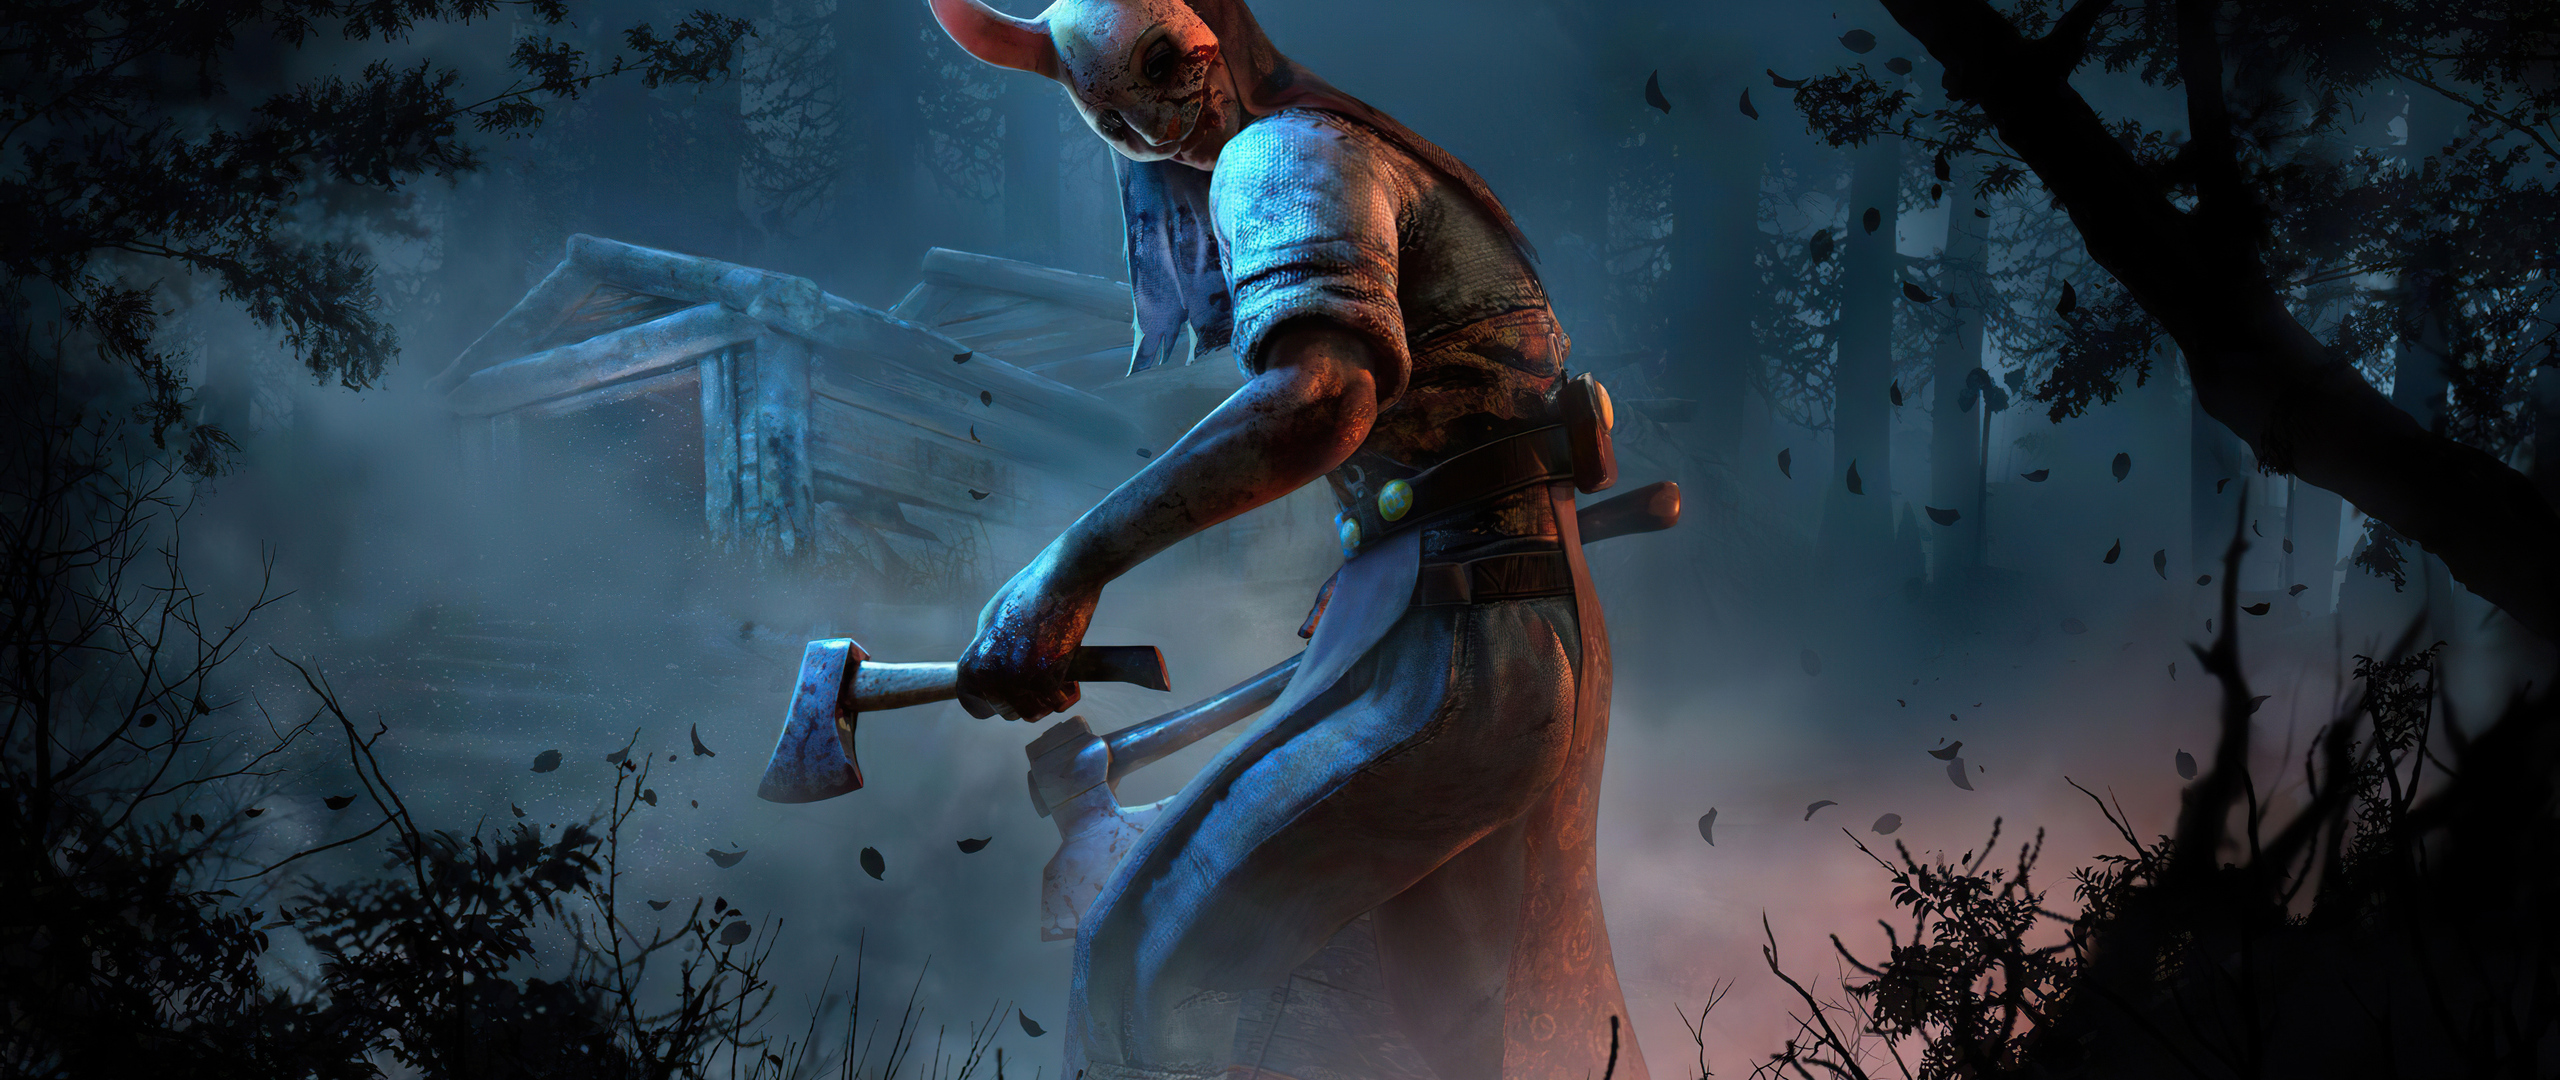 2560x1080 Dead By Daylight Lullaby 2560x1080 Resolution HD ...